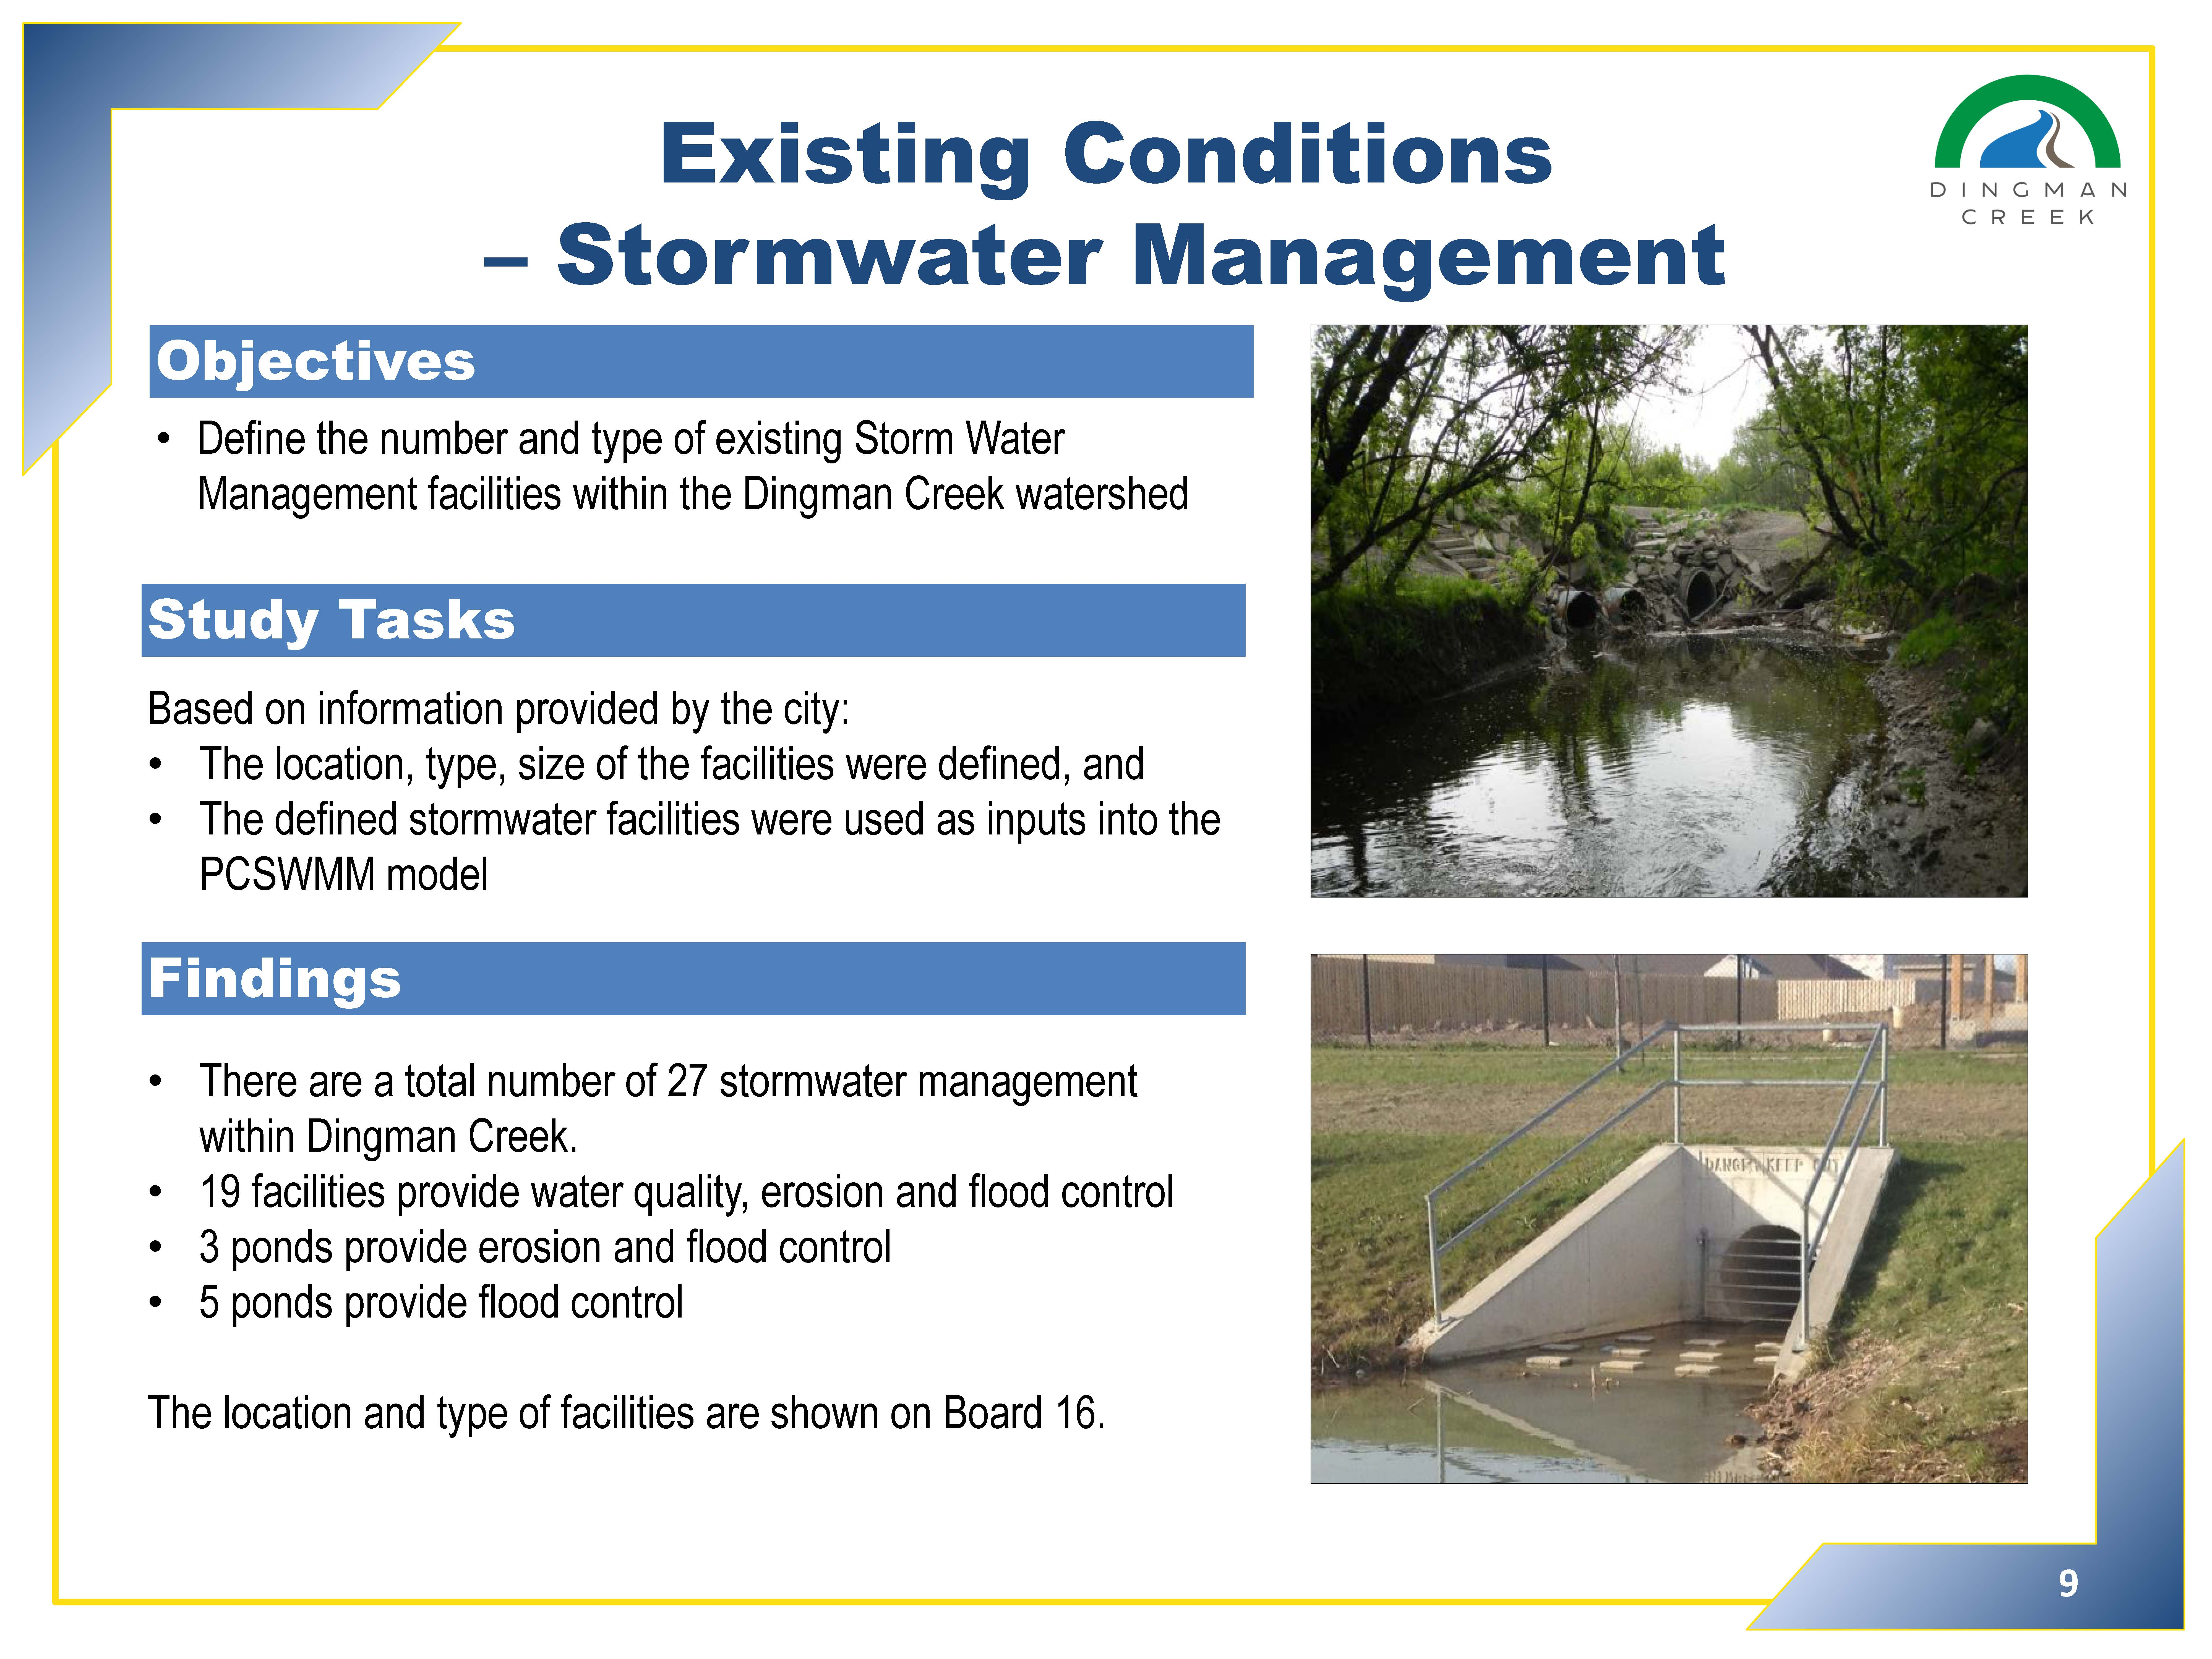 Existing Conditions - stormwater management -